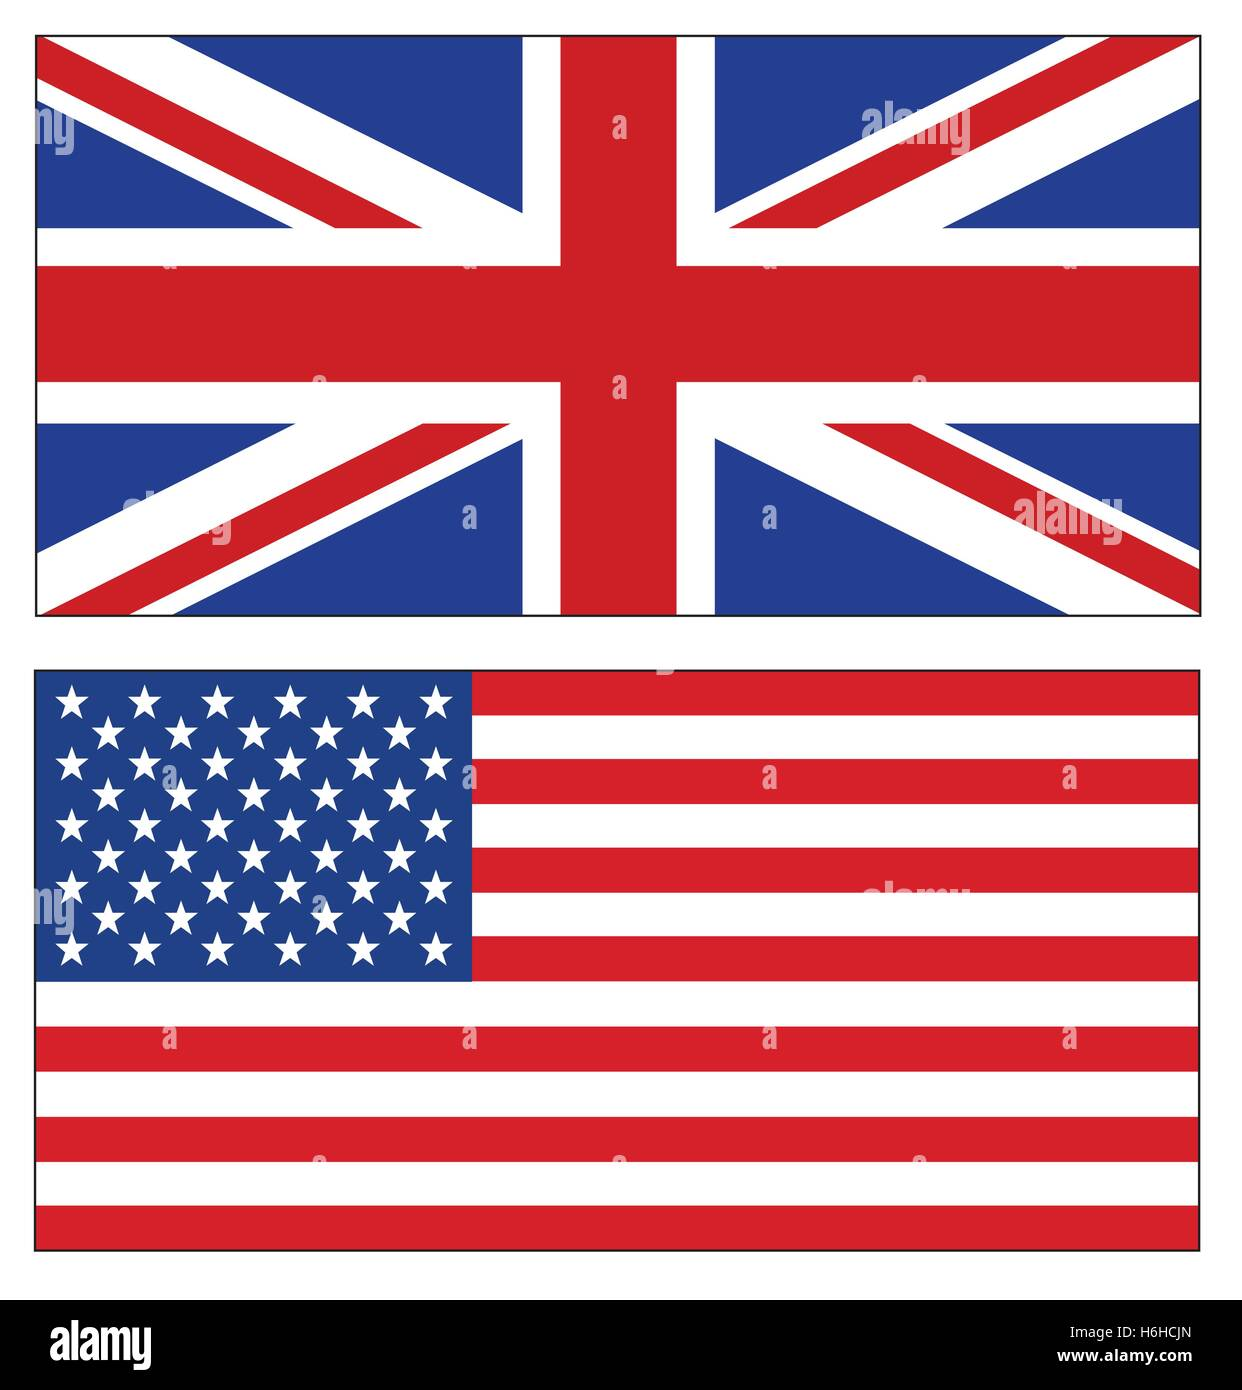 9f868476ec81 Set of UK and USA flags illustration on white background. British and  American flags.